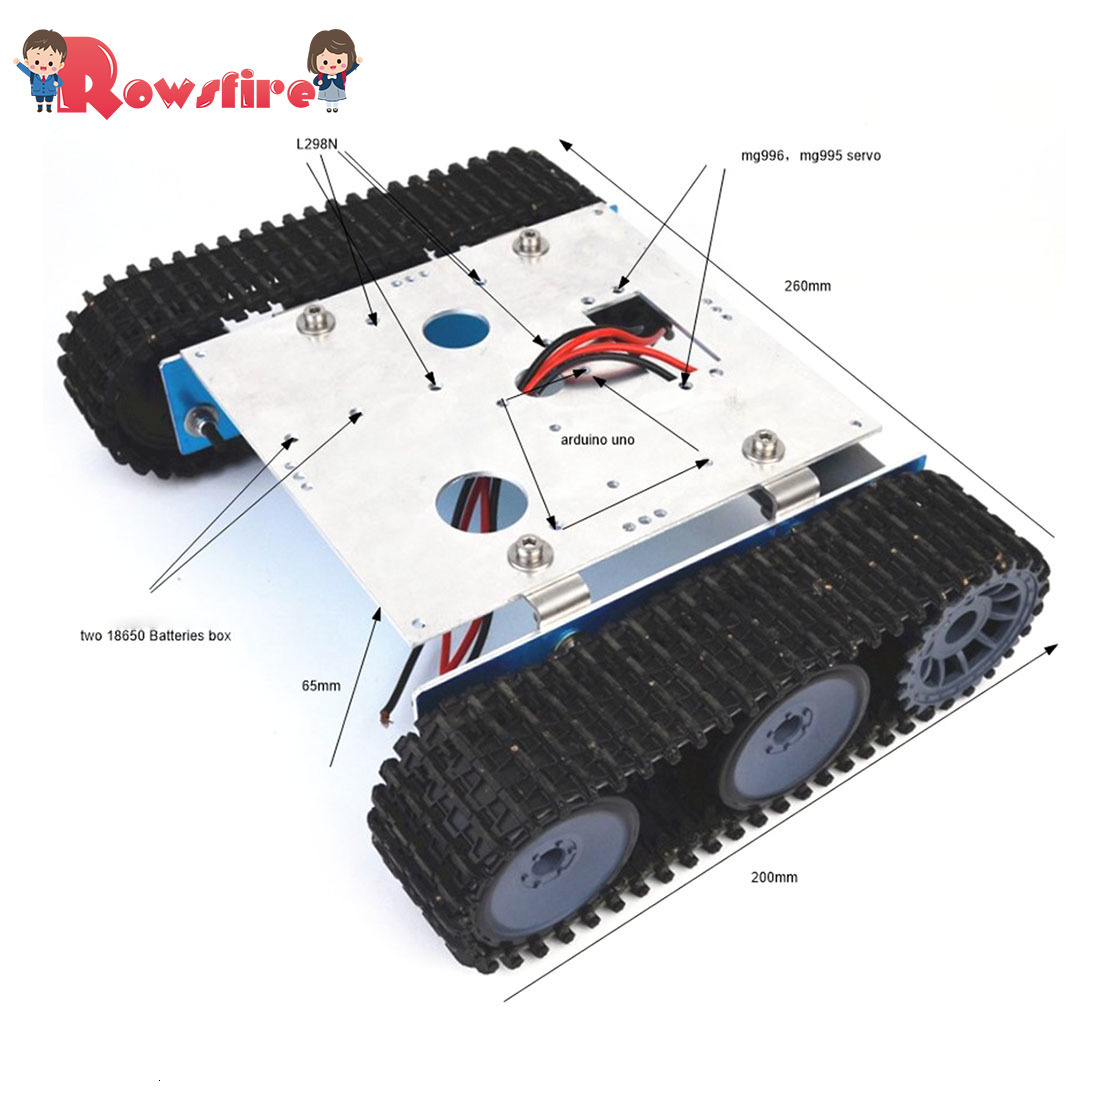 DIY Aluminium Alloy Tank Robot Caterpillar Vehicle Platform Chassis Assembly Kit For Arduino